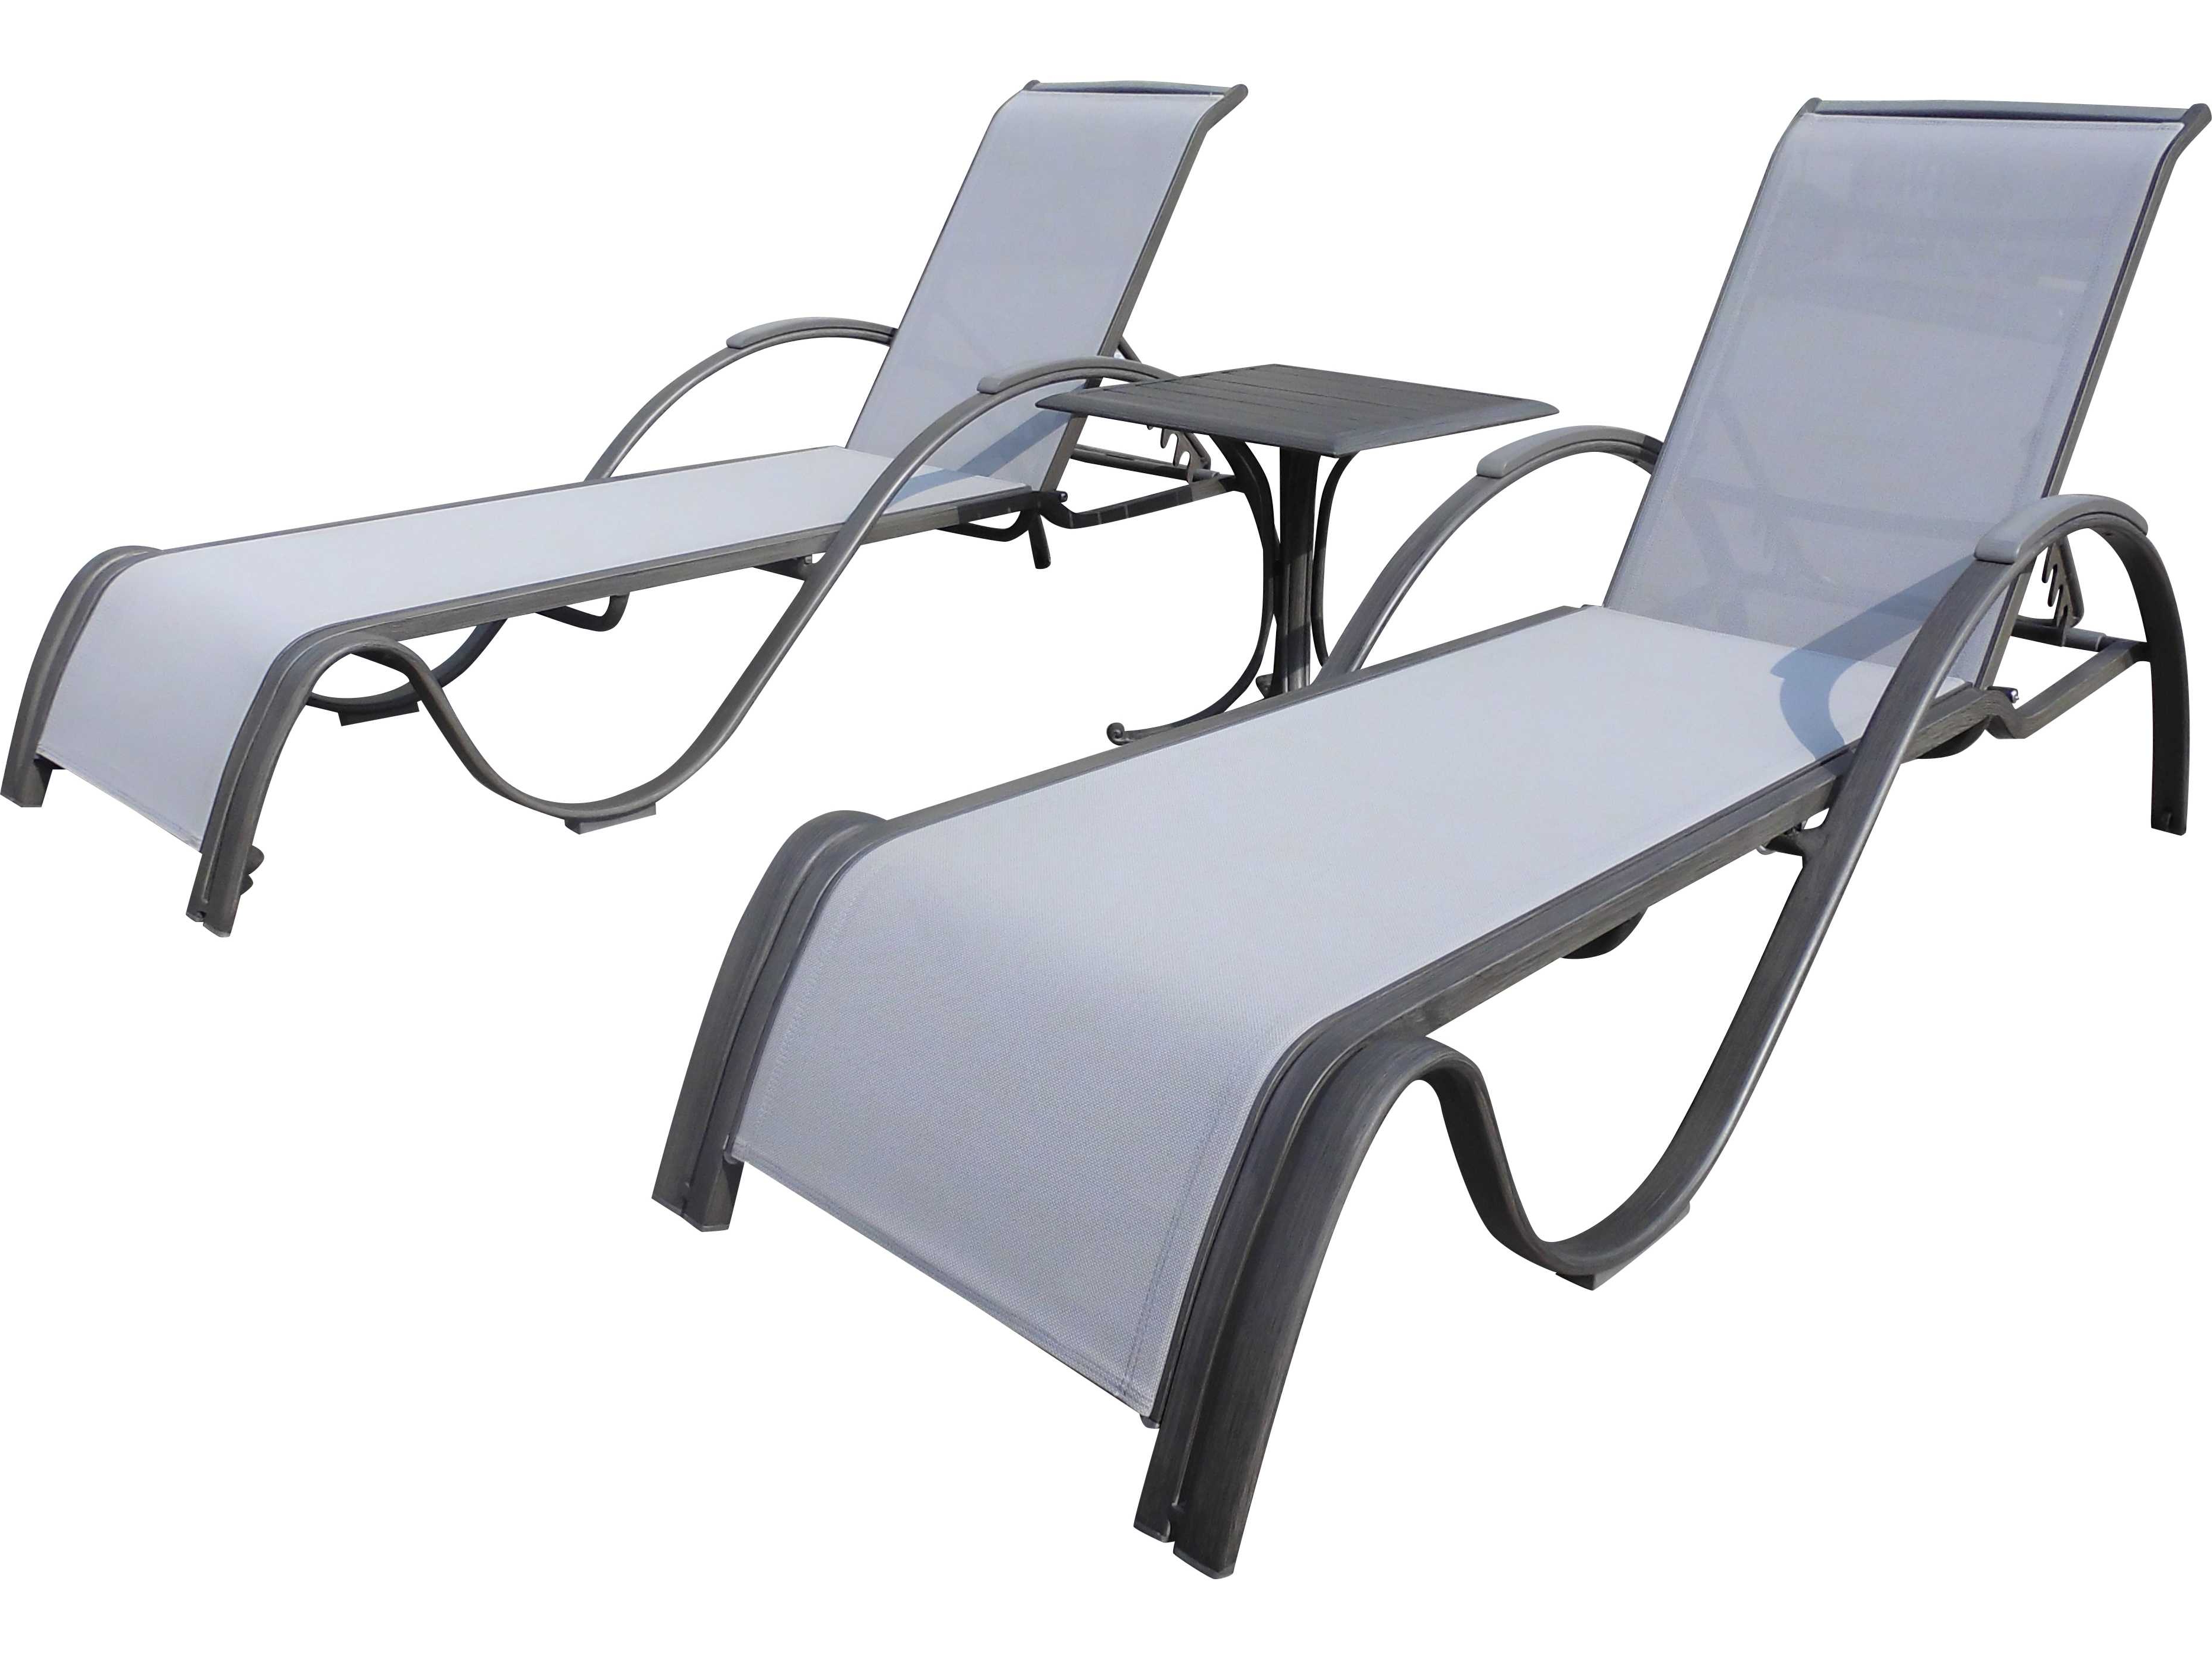 Shore Alumunium Outdoor 3 Piece Chaise Lounger Sets With Regard To Fashionable Panama Jack Newport Beach Wicker 3 Pc Chaise Lounge Set (View 22 of 25)